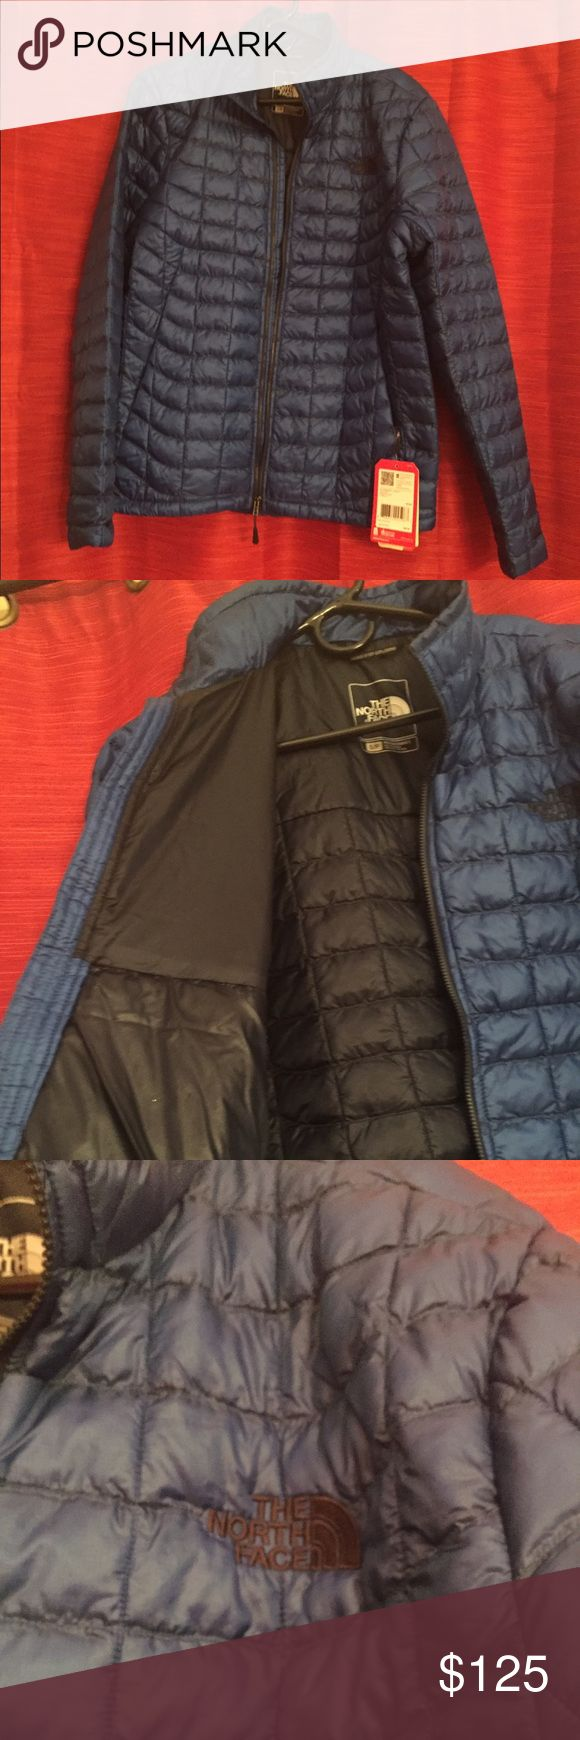 🎉Flash Sale🎉 NWT! Men's Northface Thermoball! Mens, Monster Blue Northface Thermoball Jacket in small! NWT! Excellent pricing for a warm winter coat! North Face Jackets & Coats Ski & Snowboard